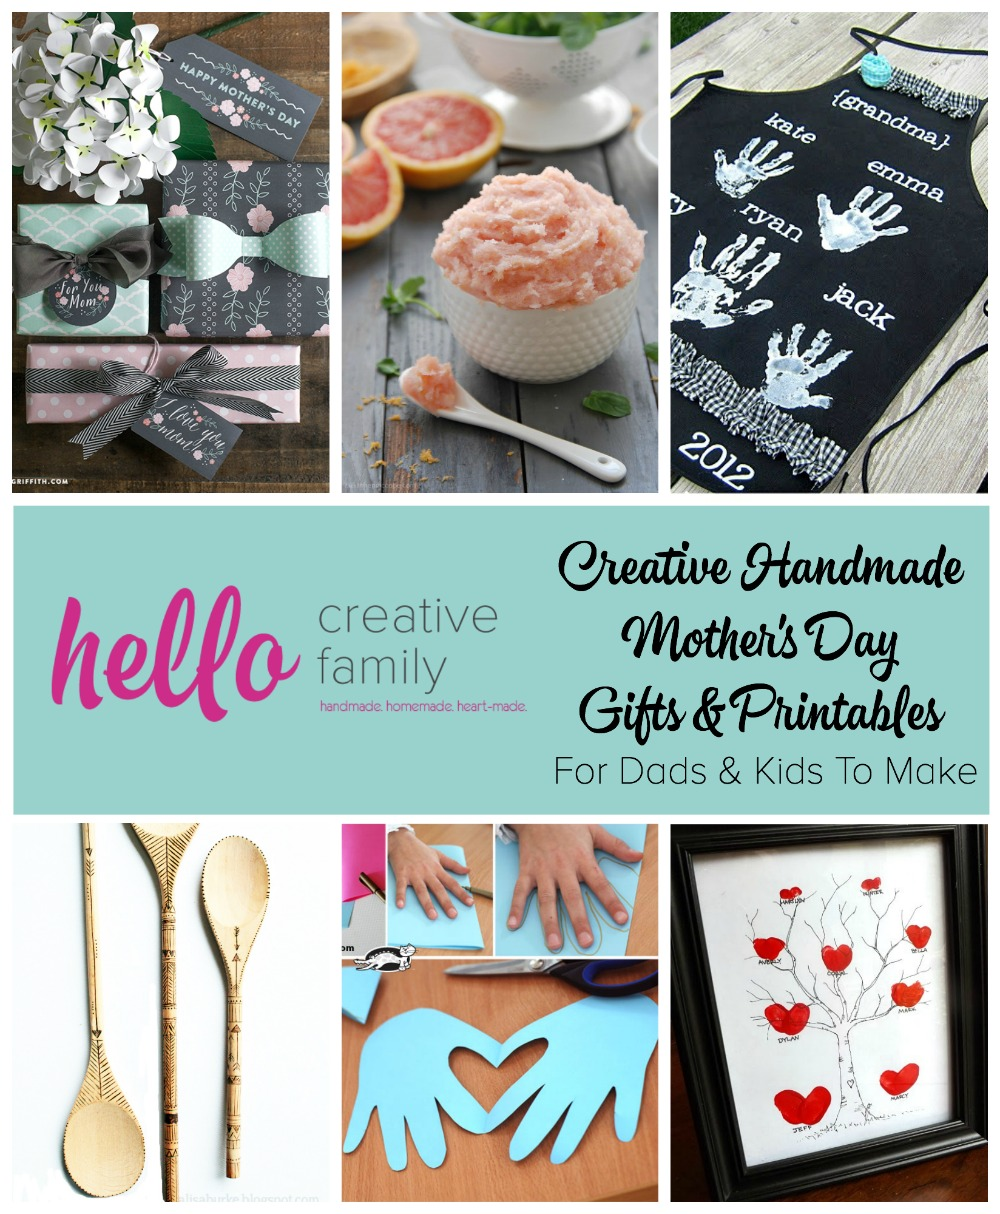 Creative Handmade Mothers Day Gifts And Printables For